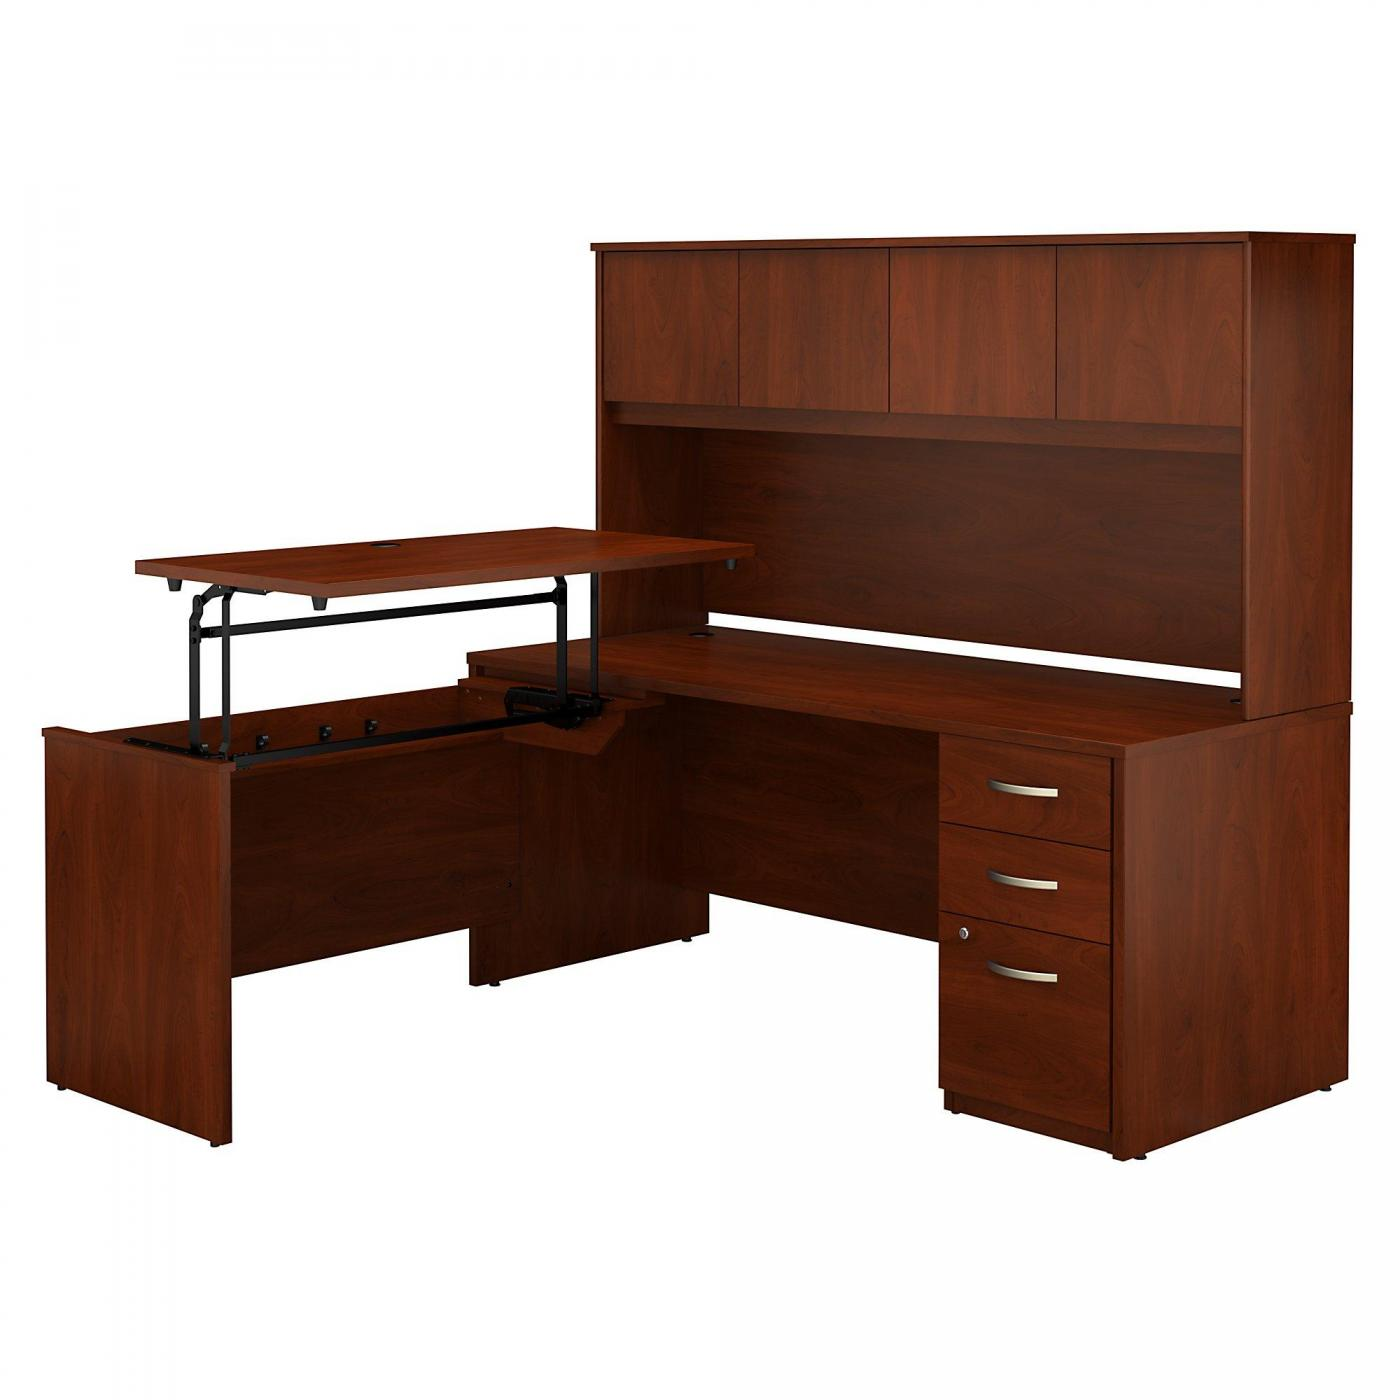 </b></font><b>BUSH BUSINESS FURNITURE SERIES C ELITE 72W X 30D 3 POSITION SIT TO STAND L SHAPED DESK WITH HUTCH AND 3 DRAWER FILE CABINET. FREE SHIPPING. VIDEO:</b></font>  VIDEO BELOW. <p>RATING:&#11088;&#11088;&#11088;&#11088;&#11088;</b></font></b>